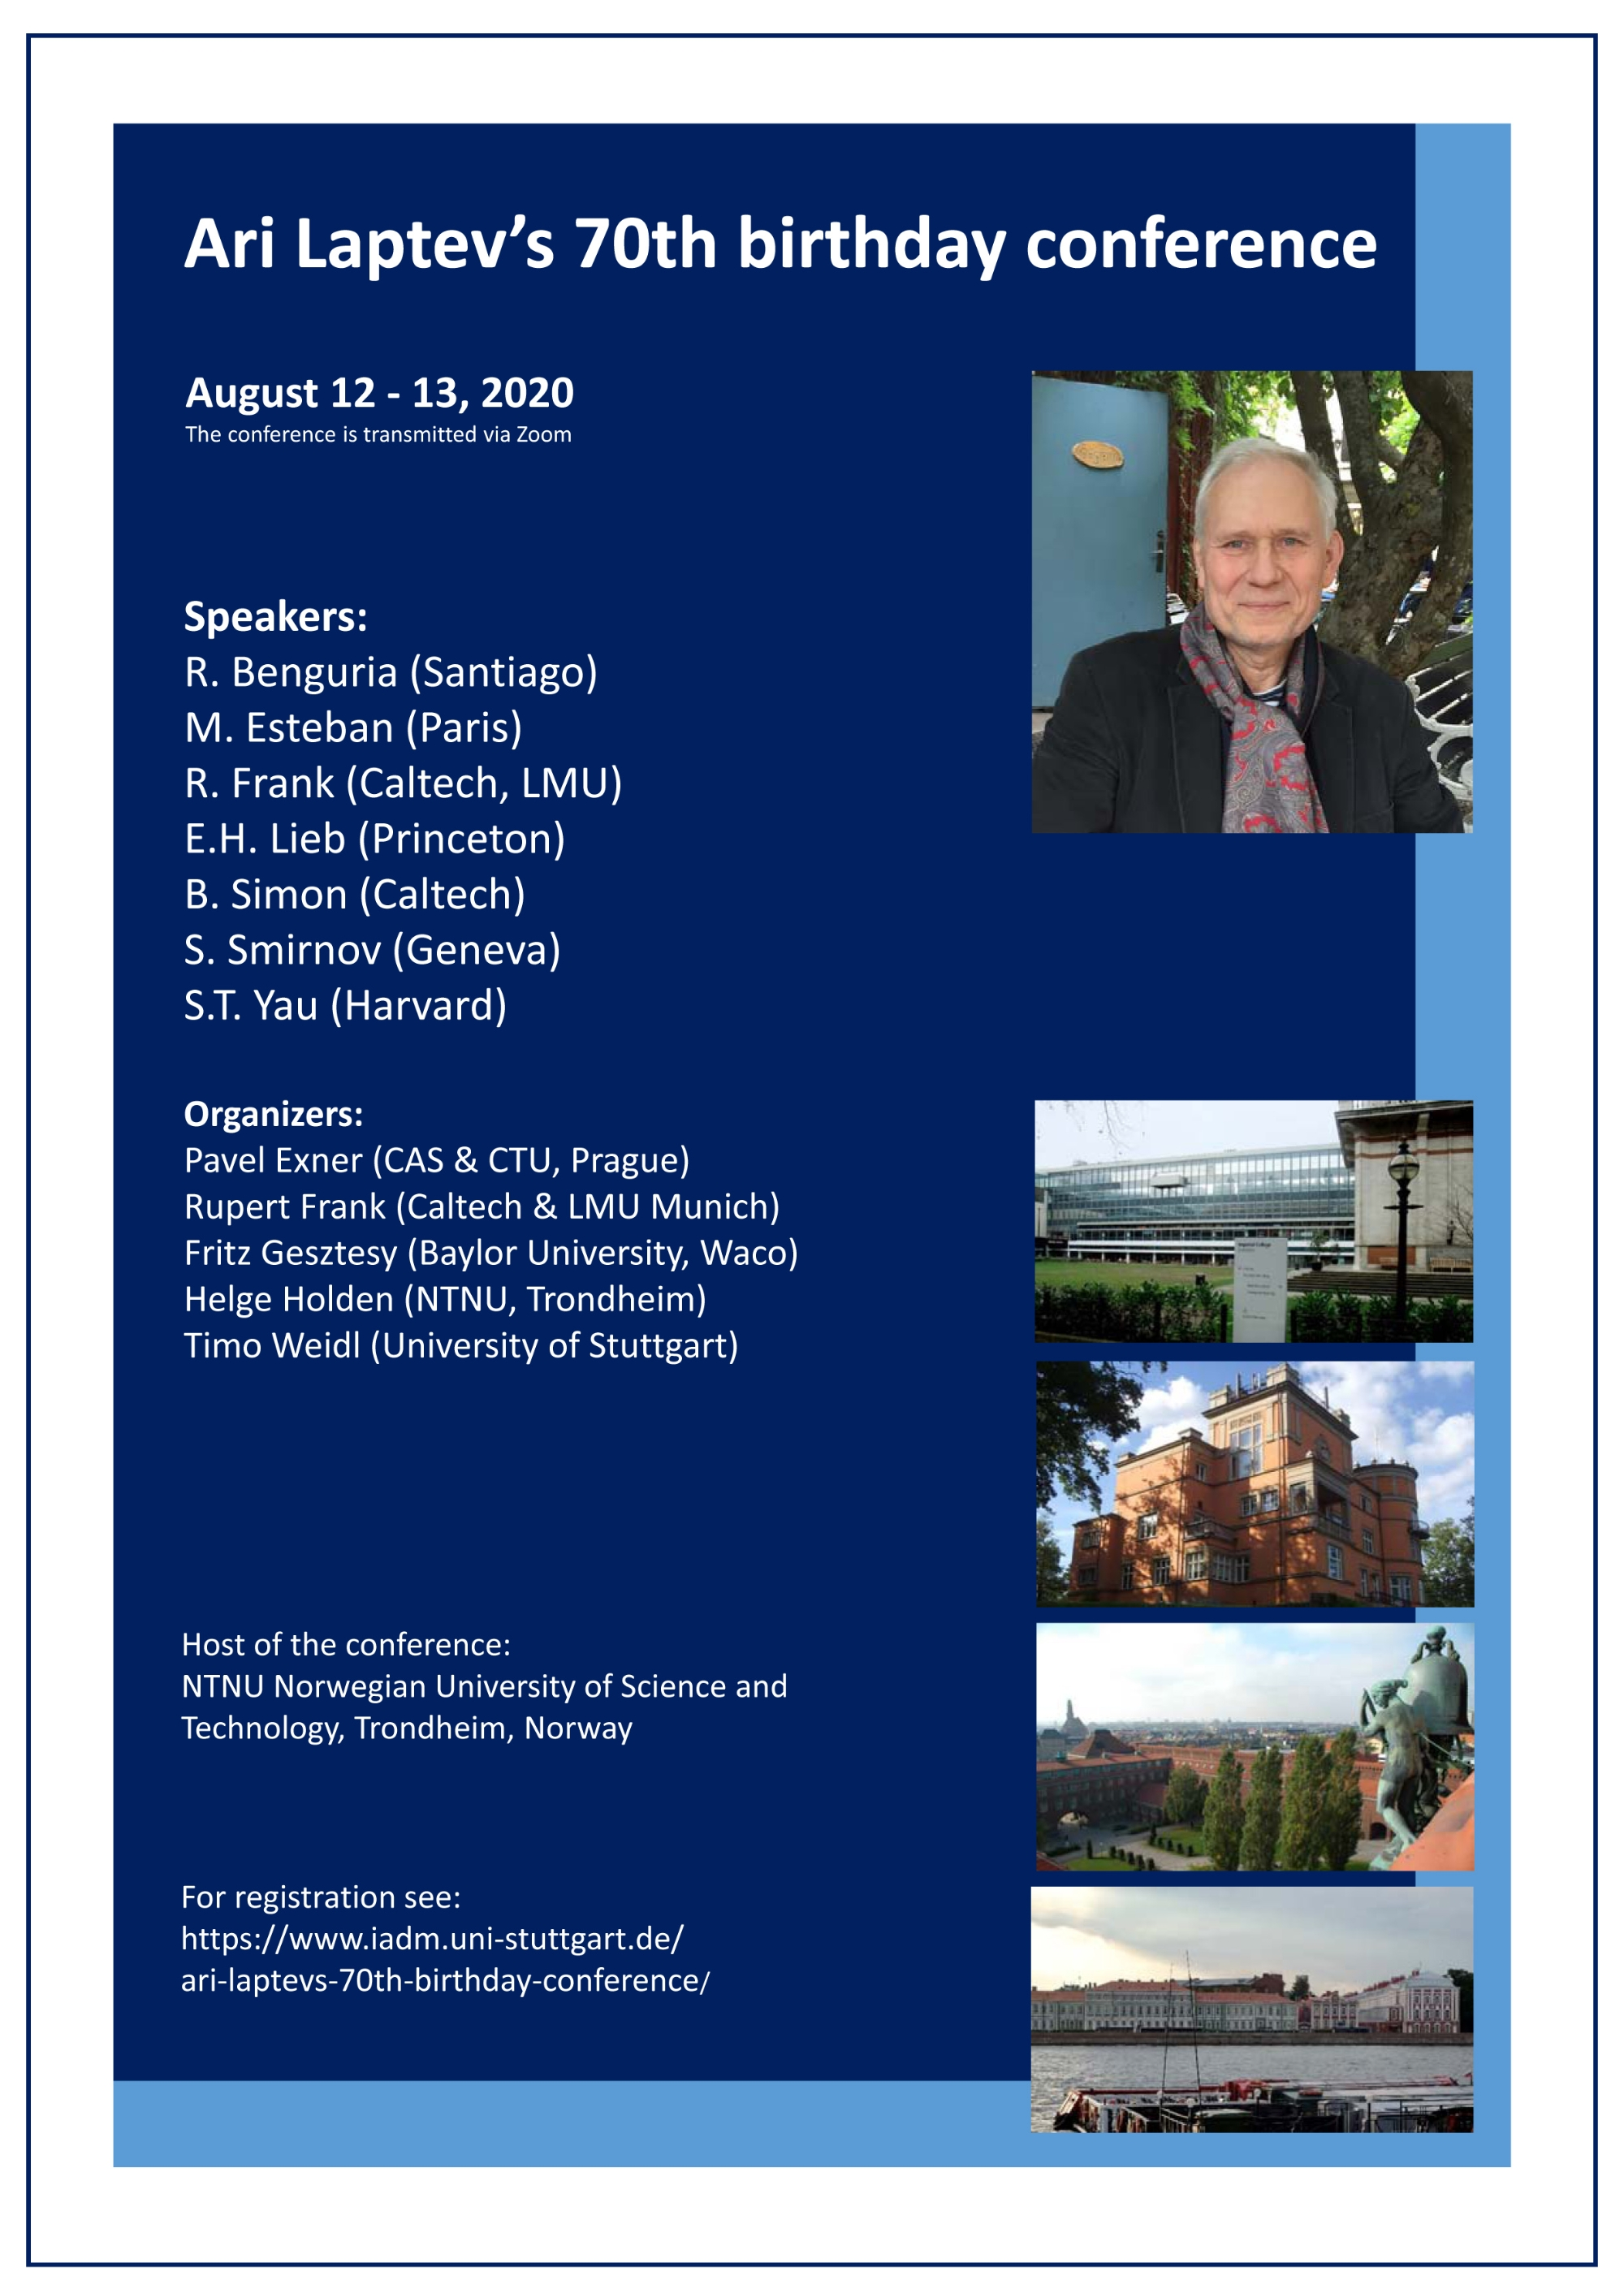 Poster Ari Laptev's 70th birthday conference_r